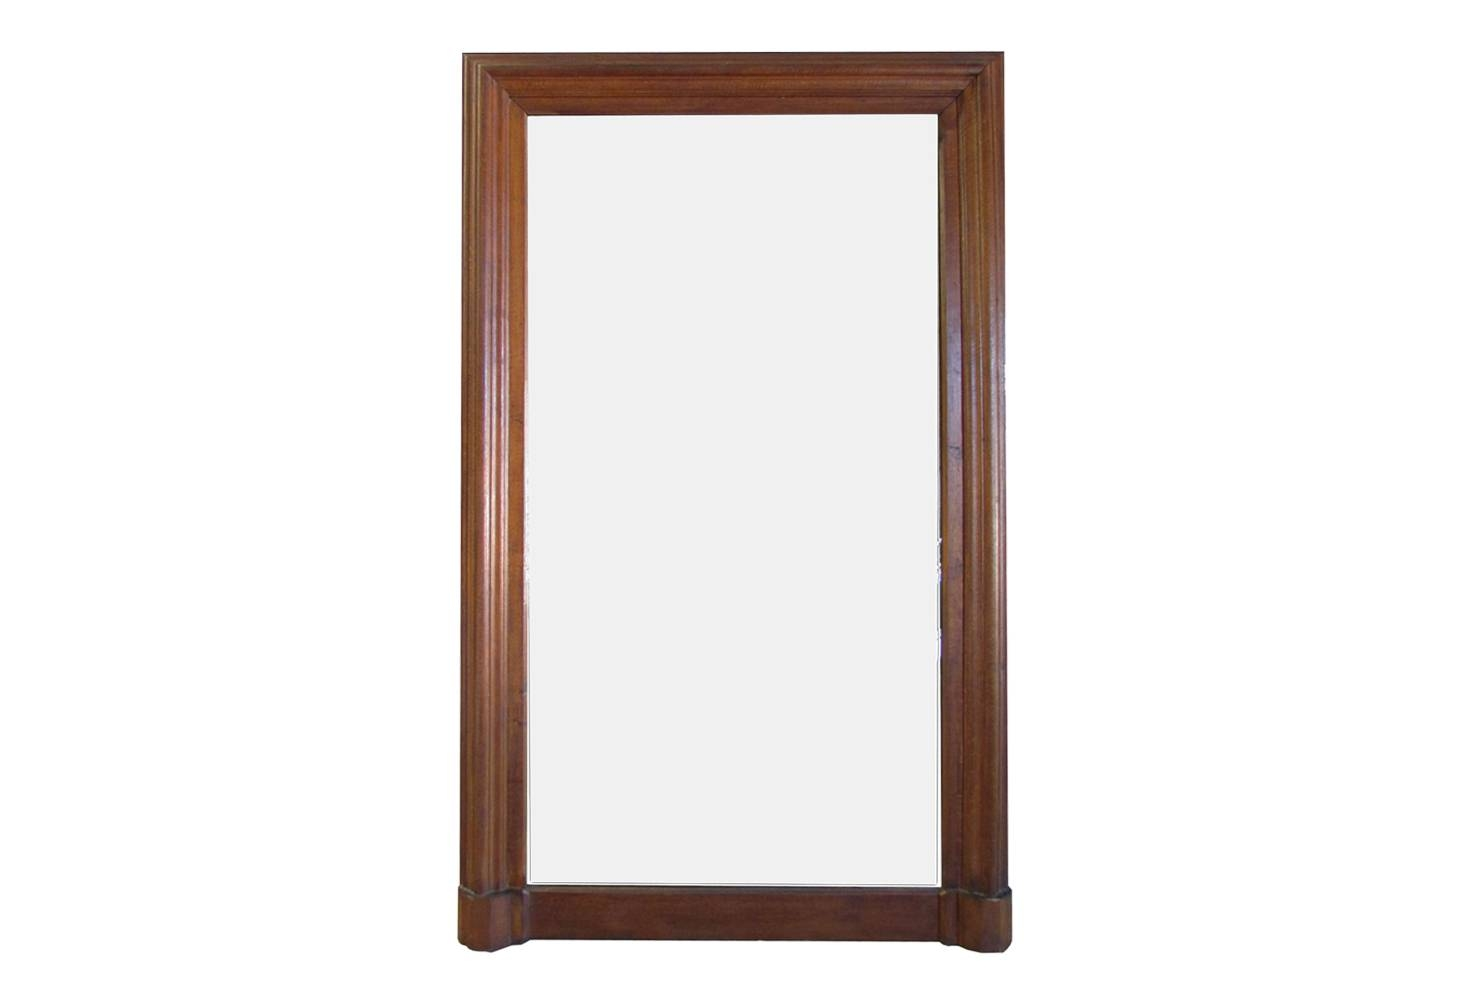 Antique French Oak Mirror | Omero Home in Antique Oak Mirrors (Image 2 of 15)